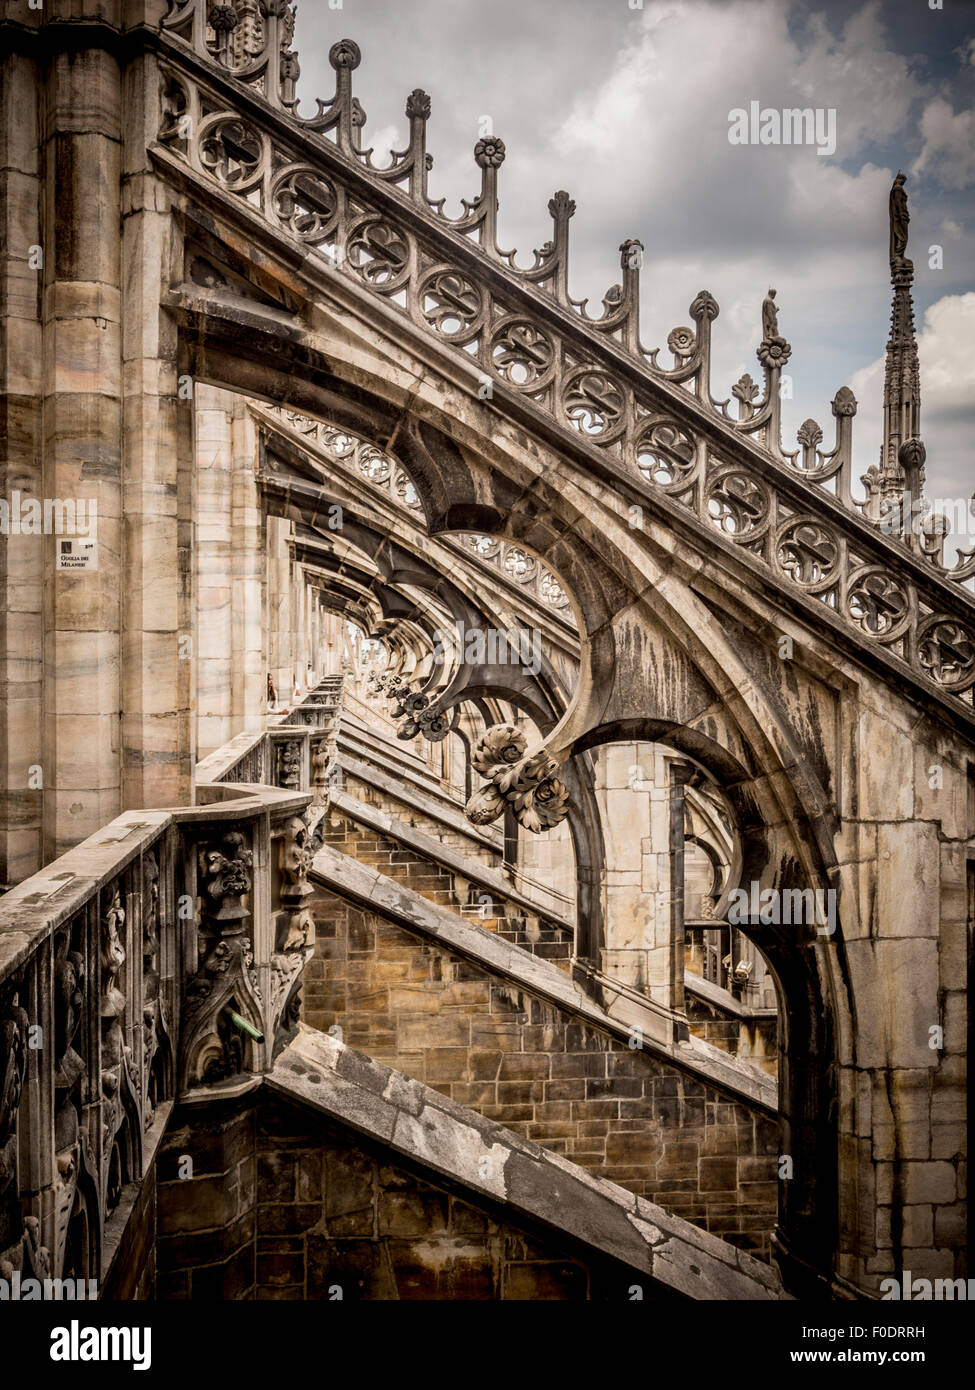 Roof structure of Milan Cathedral. - Stock Image